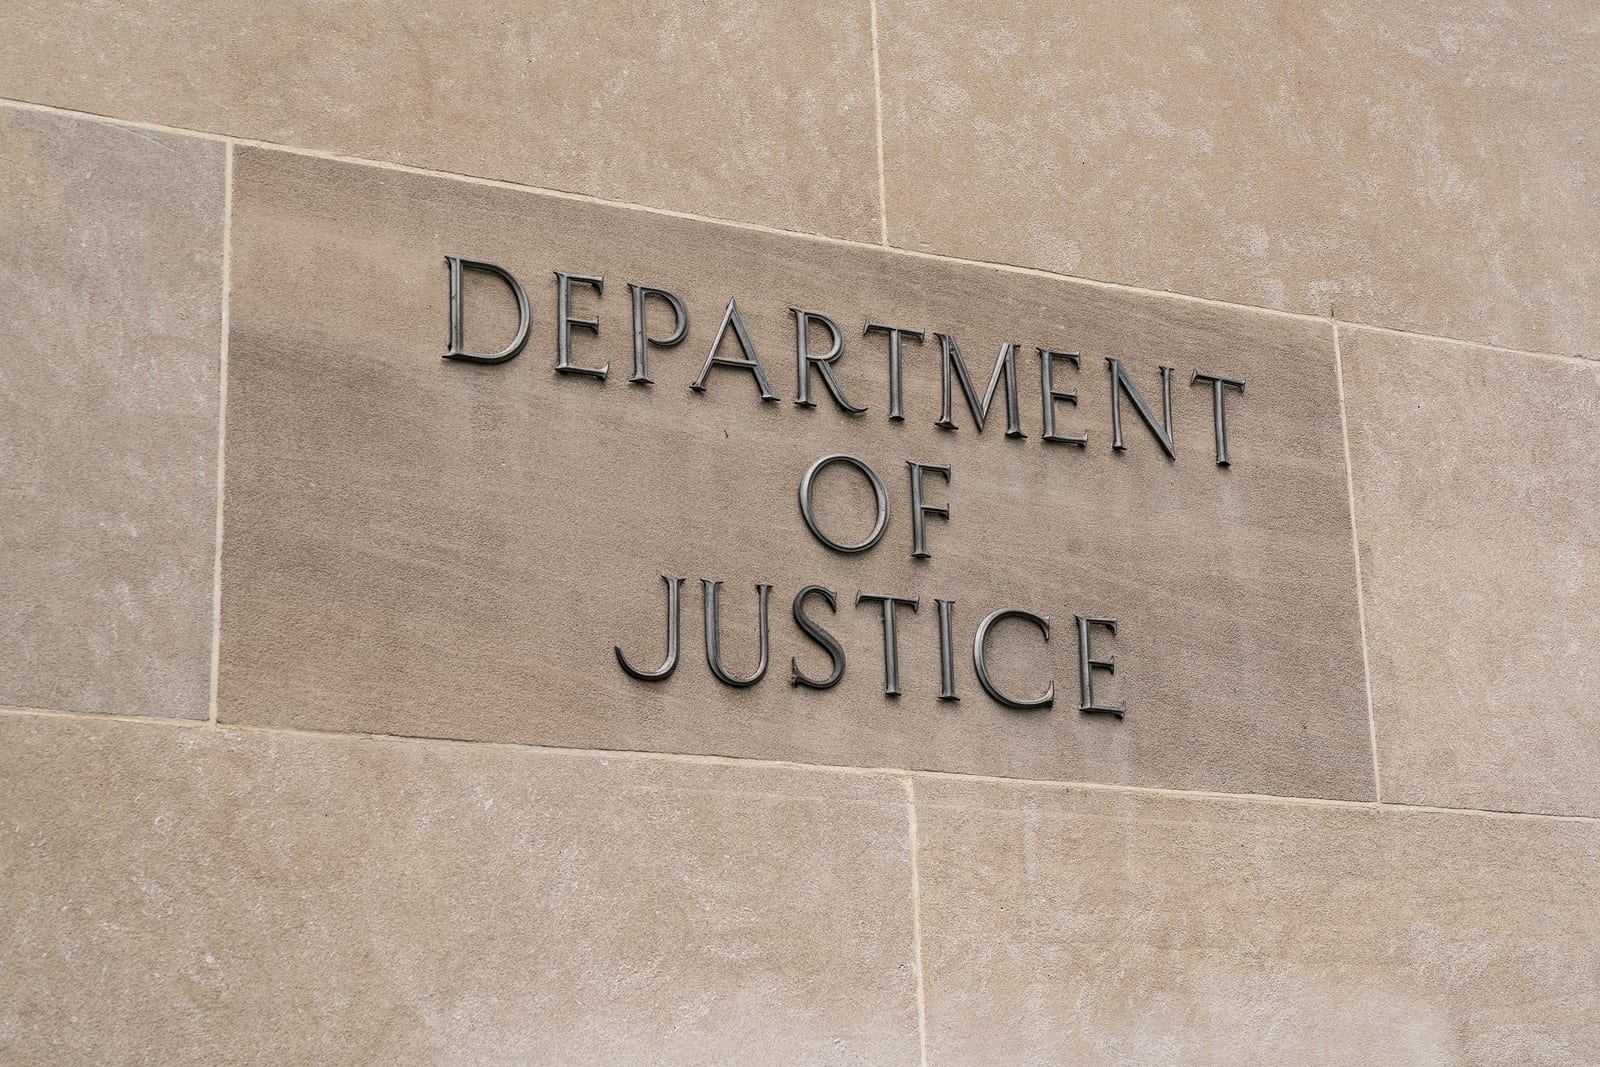 DOJ News: Former U.S. Navy Commander Sentenced to Prison for Bribery Conspiracy with Foreign Defense Contractor in U.S. Navy Corruption, Fraud Case